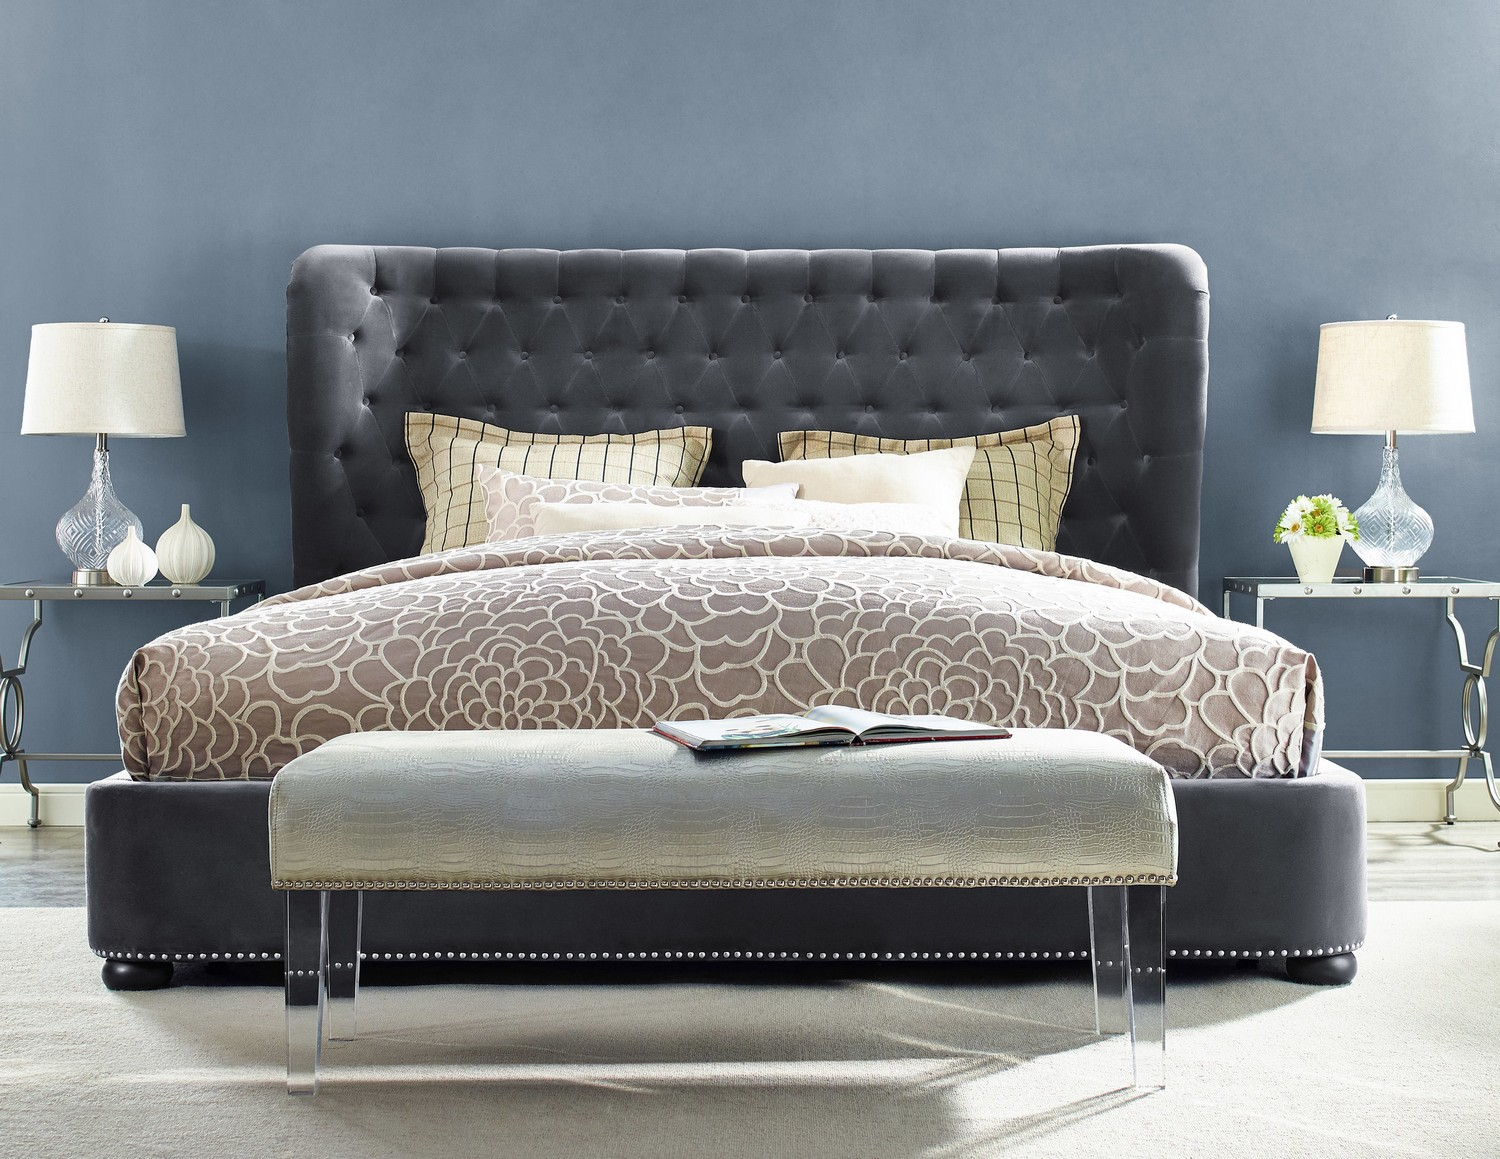 tov furniture finley grey velvet bed - Tov Furniture